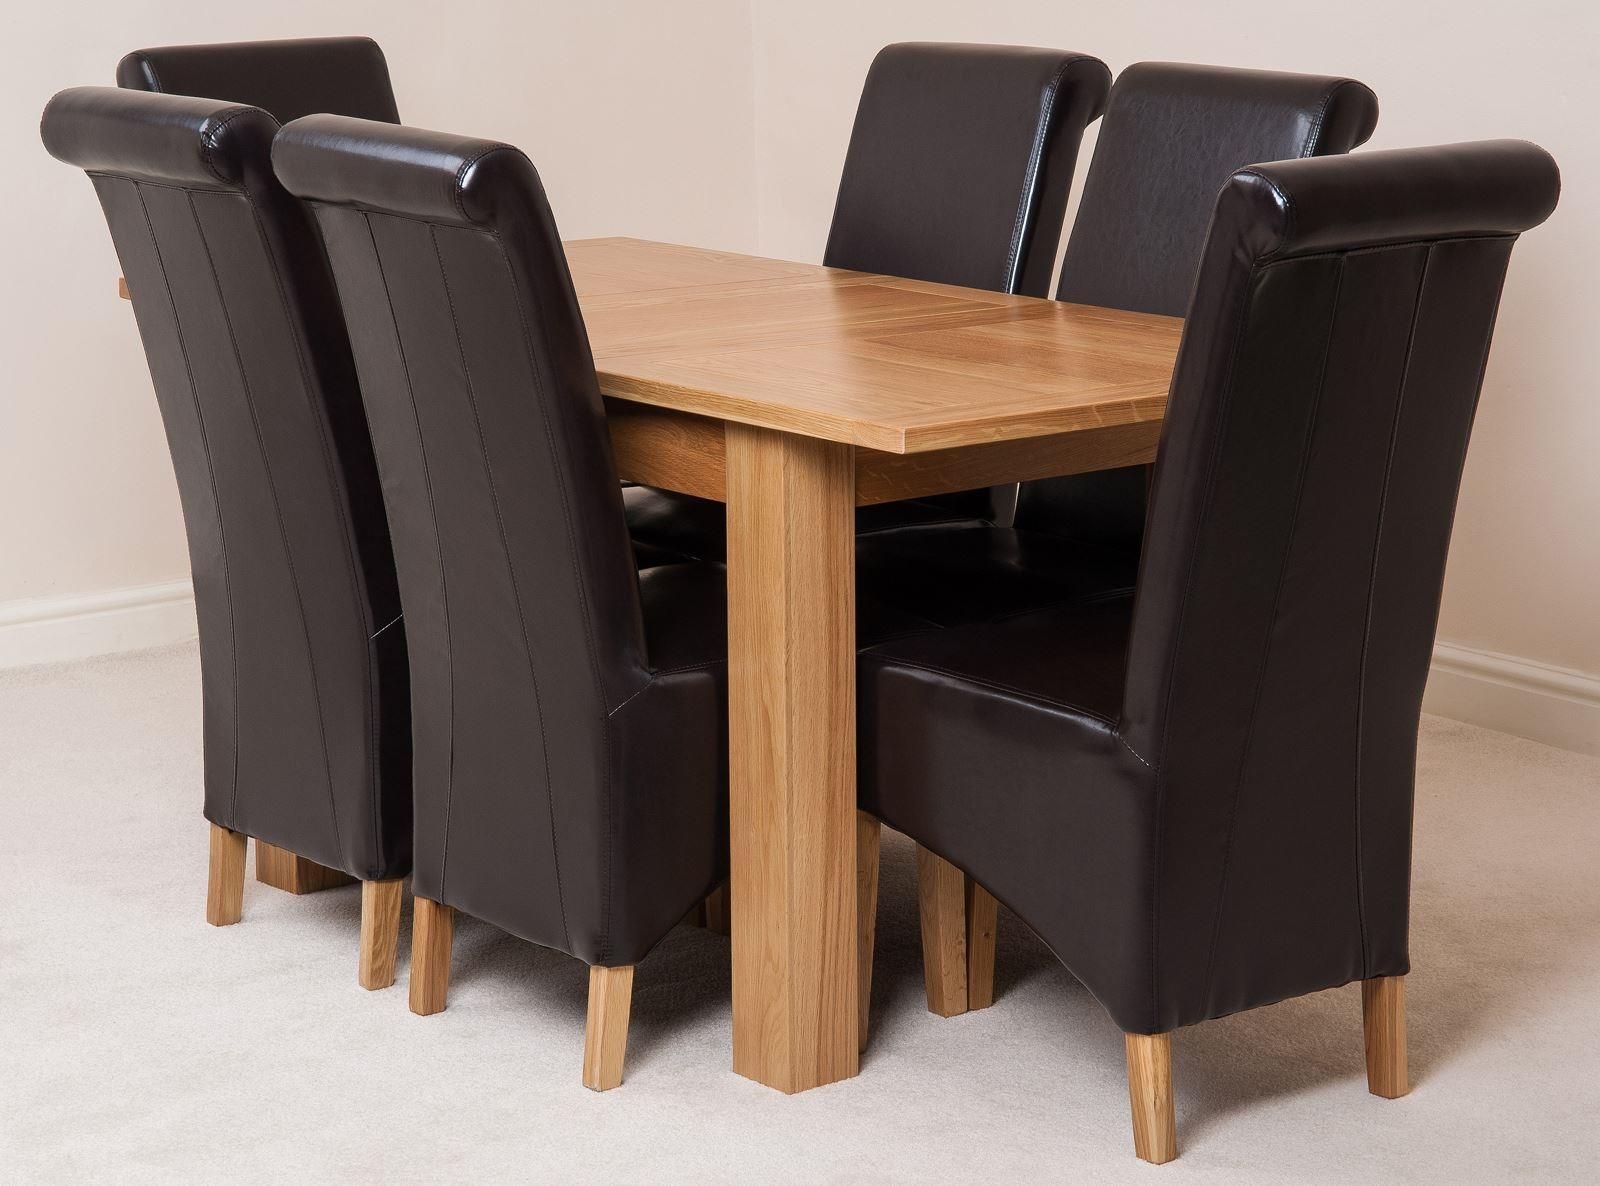 Hampton Solid Oak 120-160cm Extending Dining Table with 6 Montana Dining Chairs [Brown Leather]